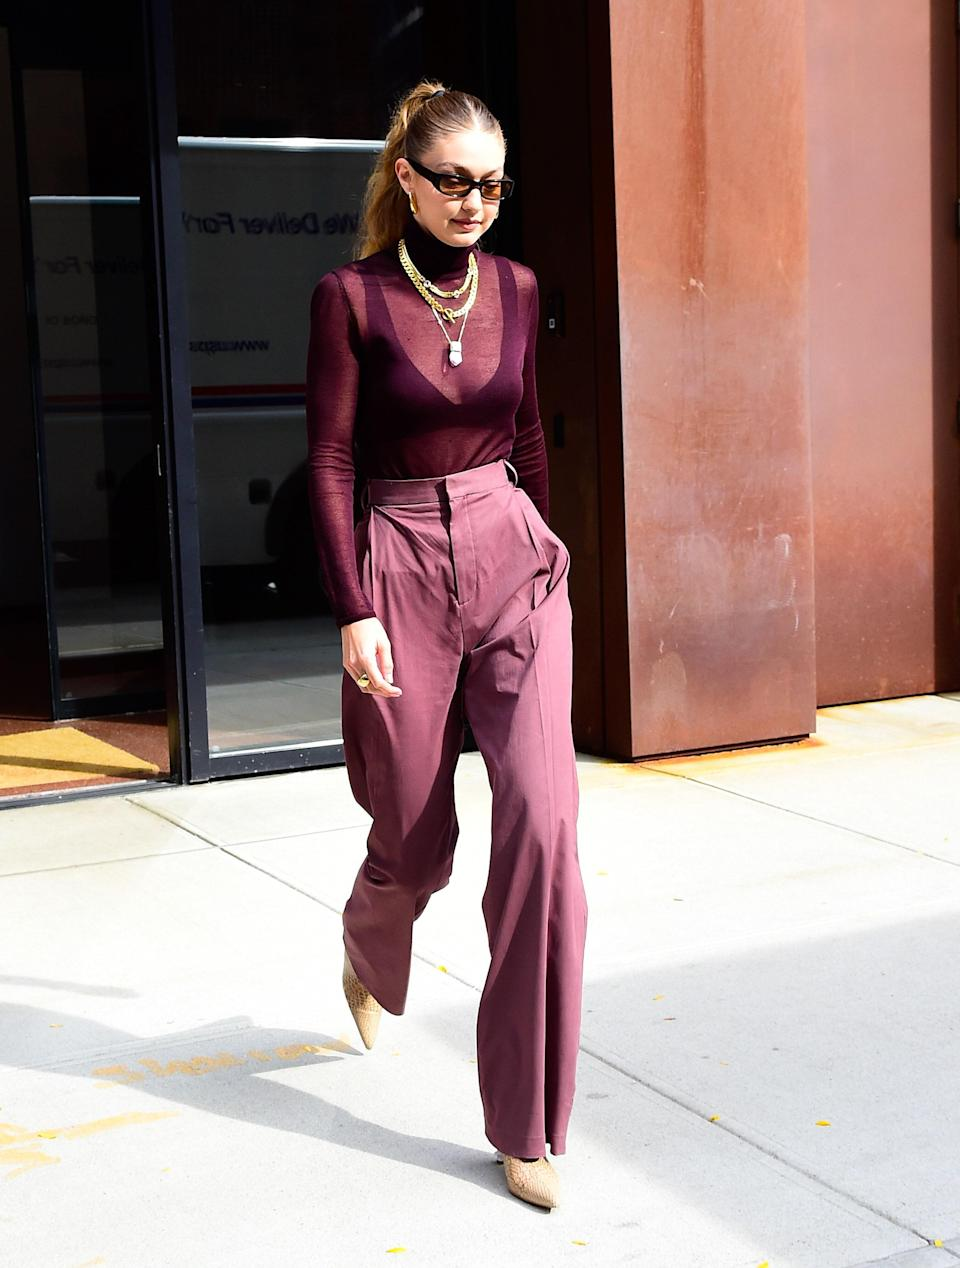 Burgundy has never looked so good.